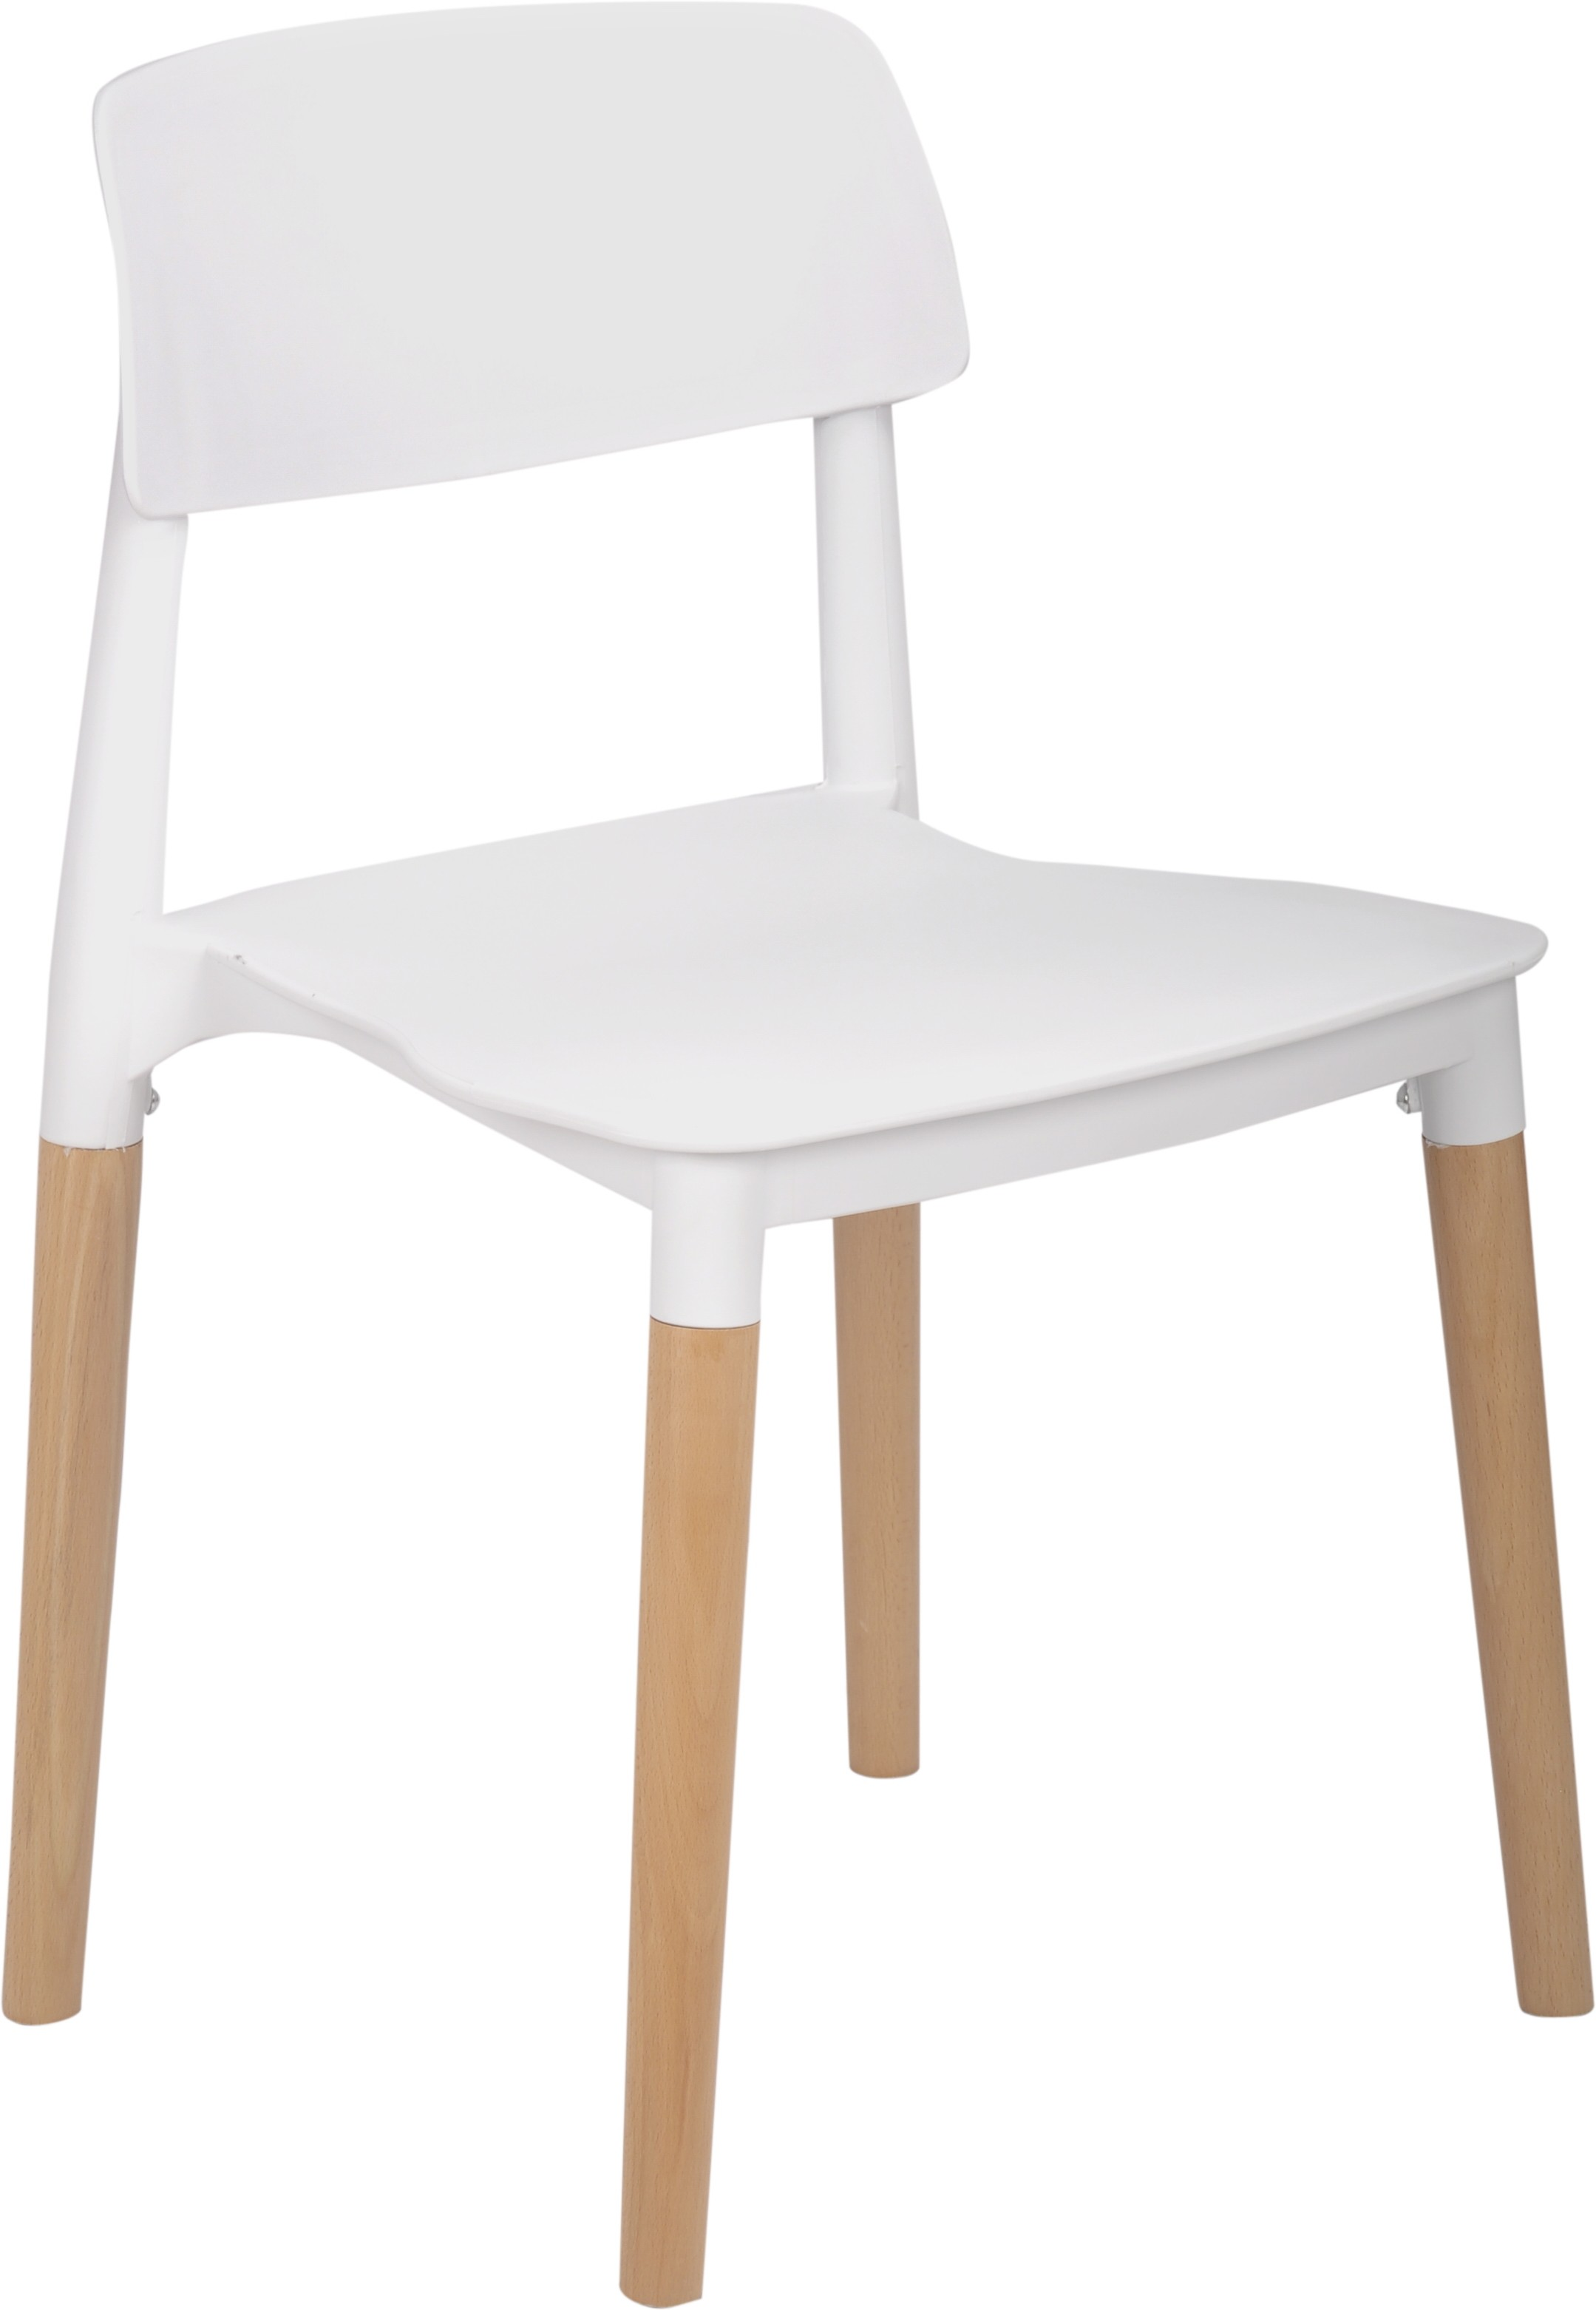 View Bharat Furniture Click Plastic Living Room Chair(Finish Color - White) Furniture (Bharat Furniture)